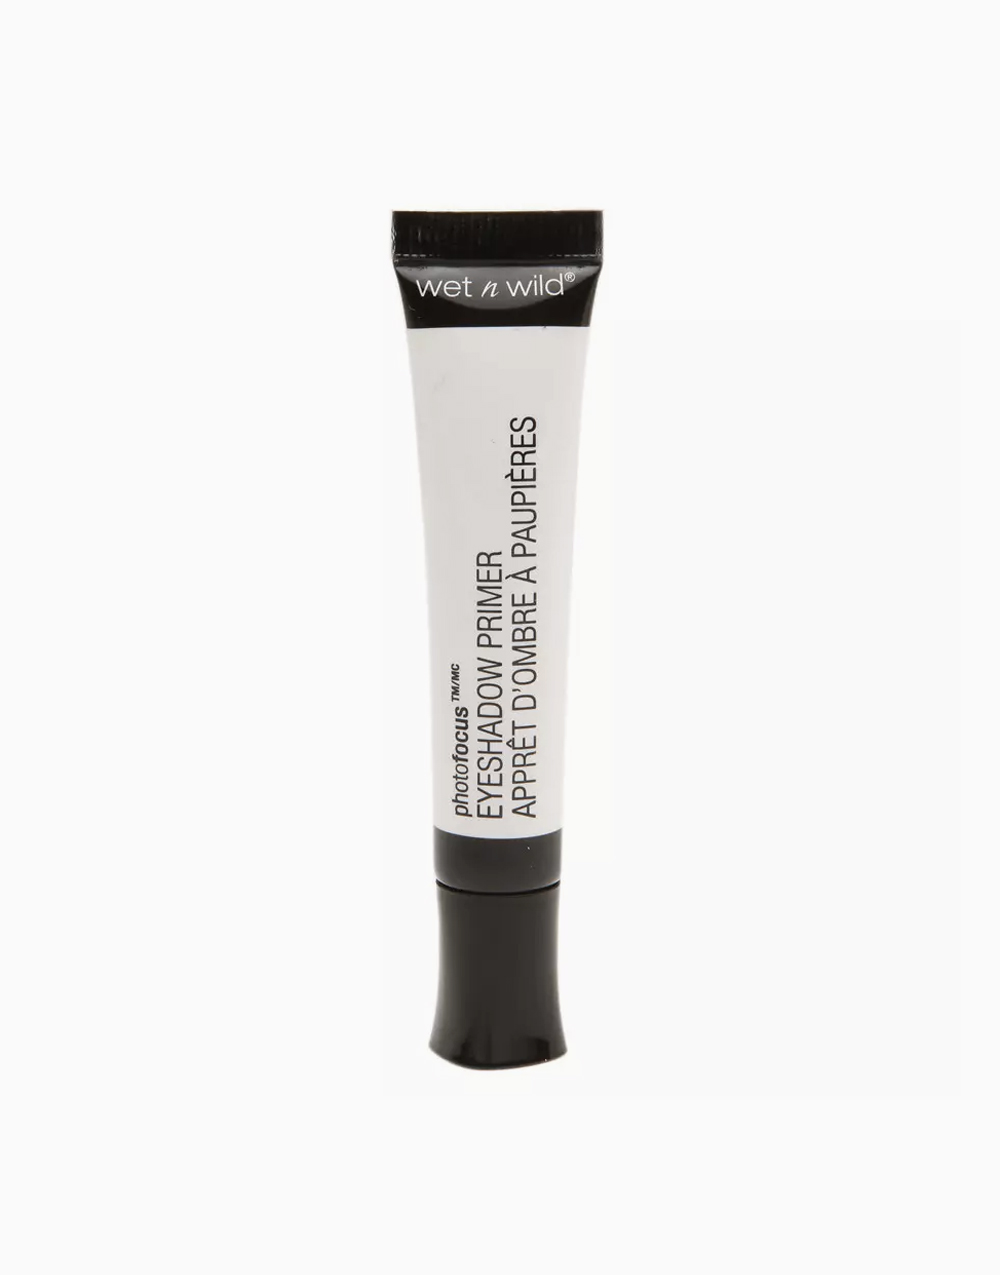 Photo Focus Eyeshadow Primer: Only a Matter of Prime by Wet n Wild